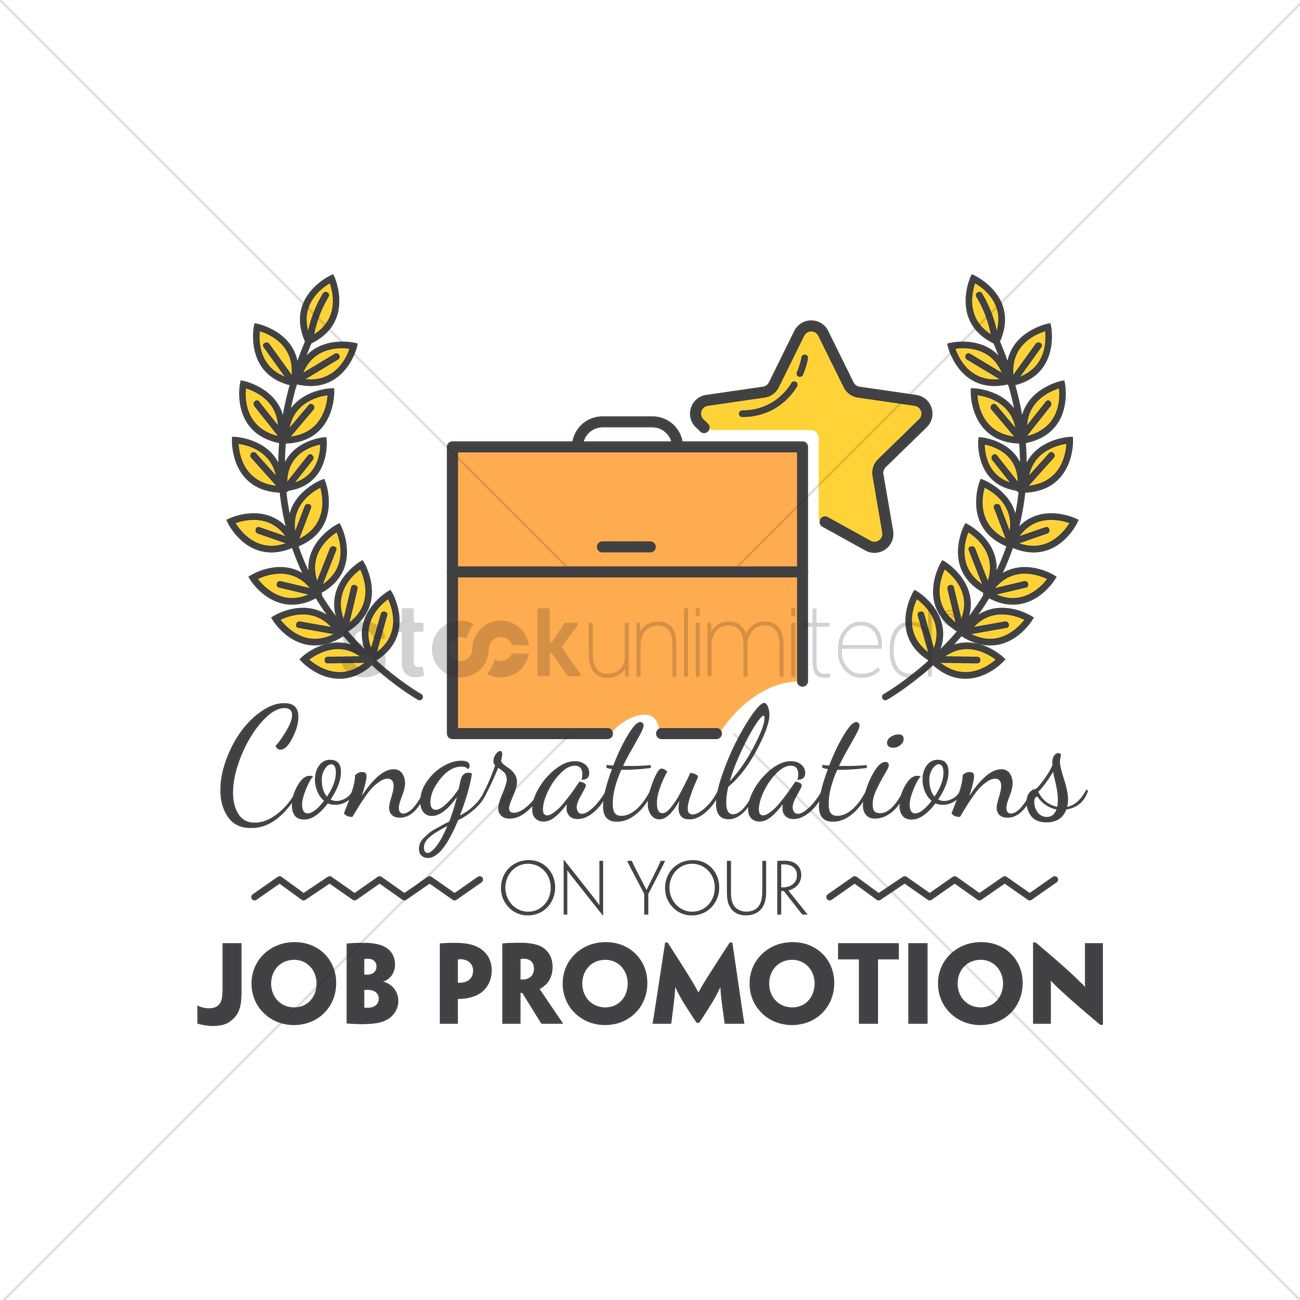 Congratulations Quotes New Job Position: Coles.thecolossus.co